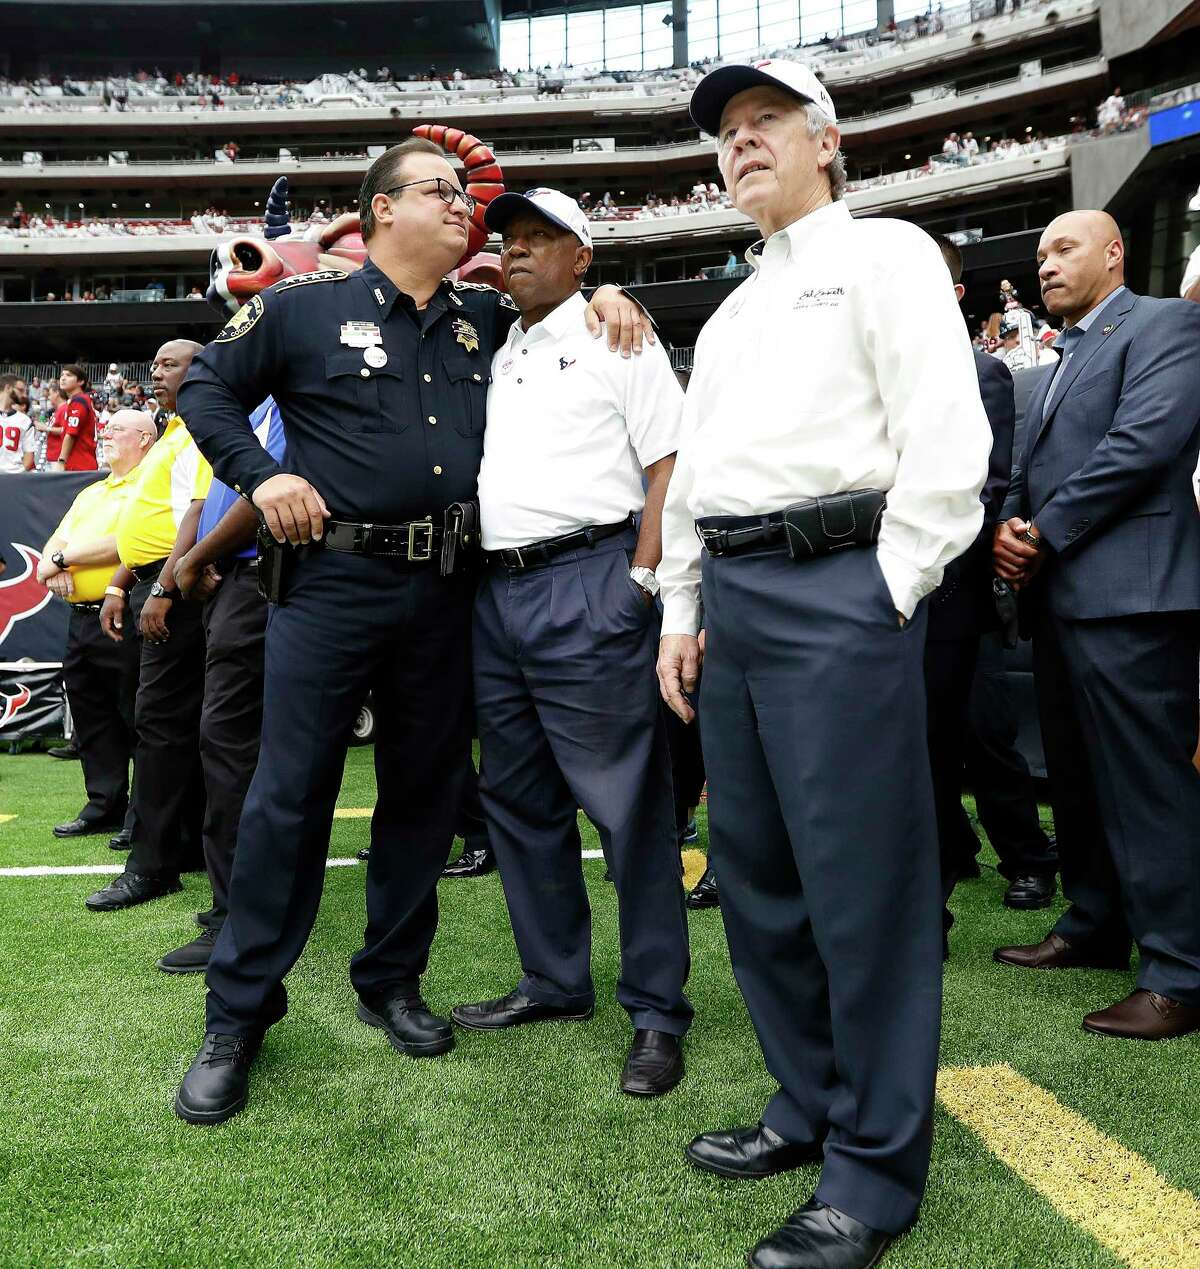 Constable Alan Rosen hugs Mayor Sylvester Turner, standing next to Judge Ed Emmett before the start of an NFL football game at NRG Stadium, Sunday, Sept. 10, 2017, in Houston.